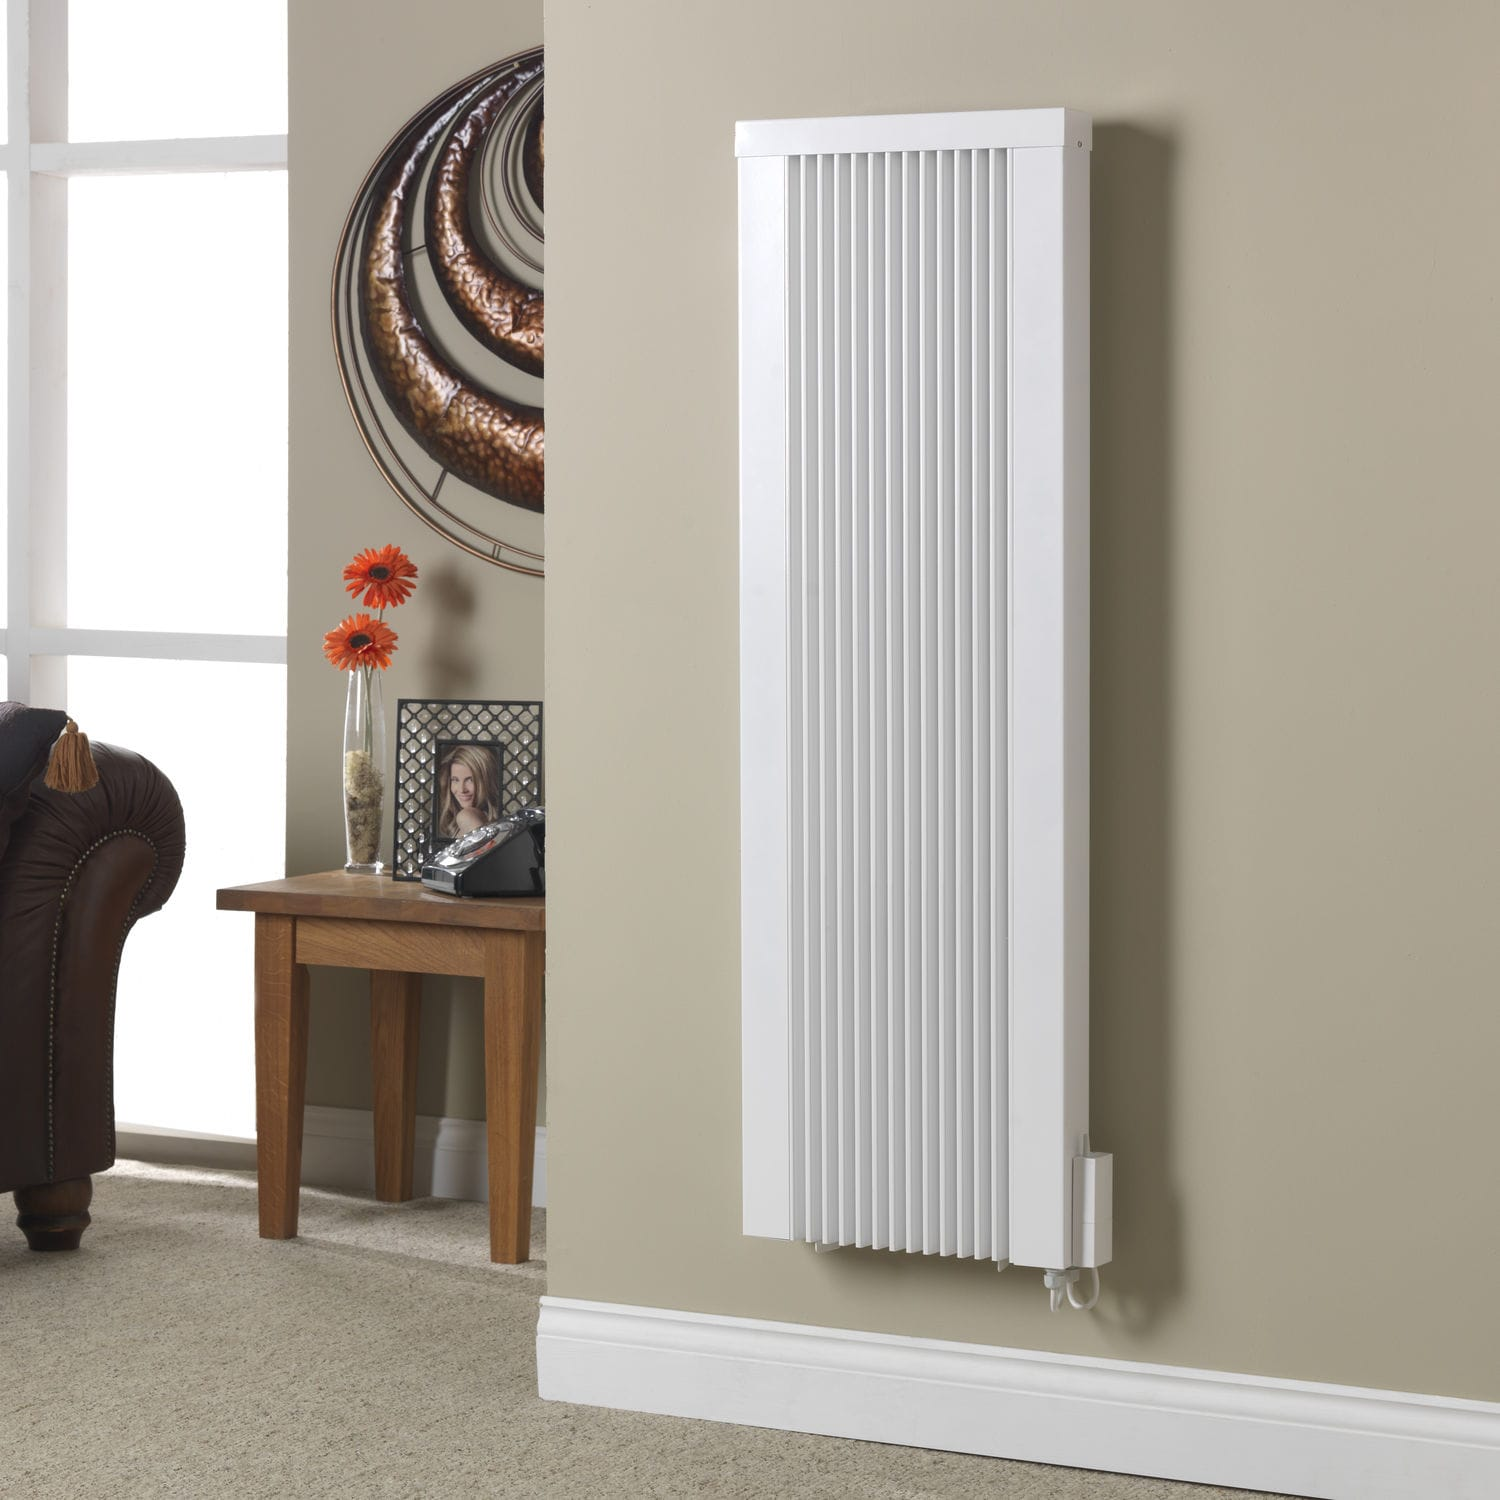 Slimline electric heaters wall mounted - Electric Radiator Metal Contemporary Vertical Tt Ks H Technotherm